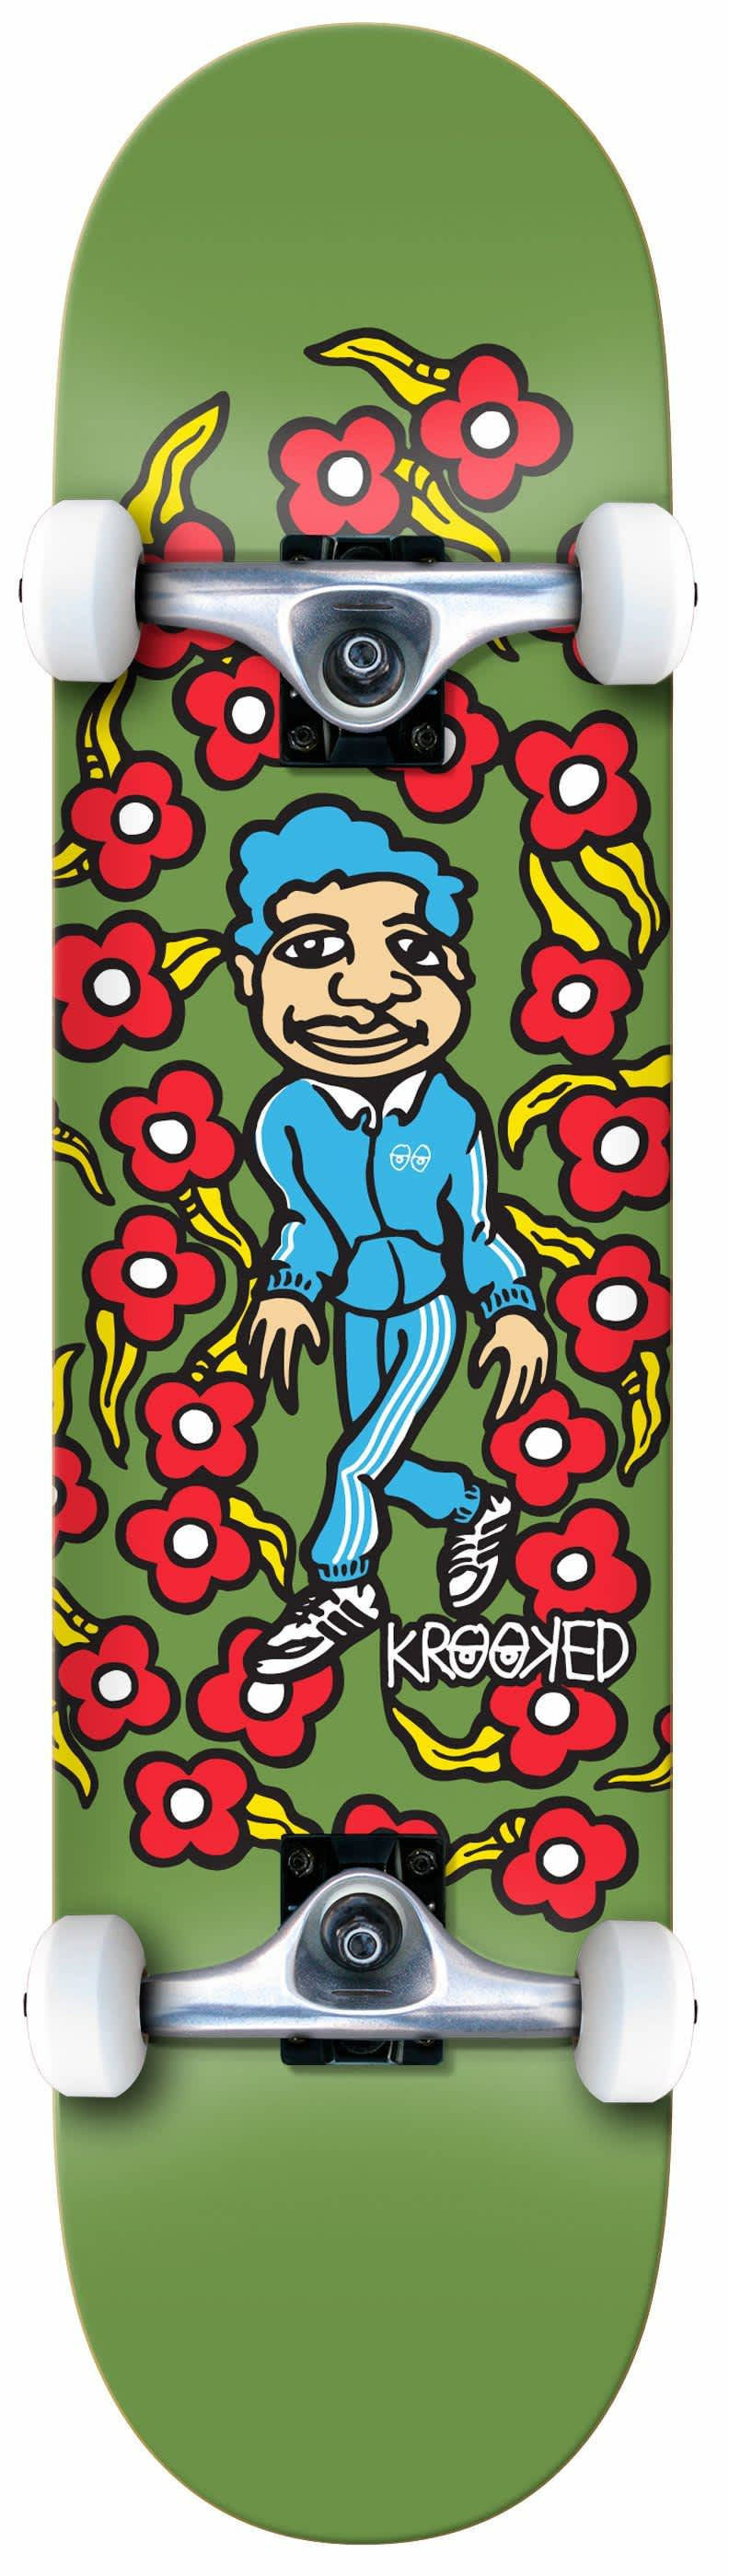 KROOKED Classic Sweatpants Complete 8.25   Complete Skateboard by Krooked Skateboards 1